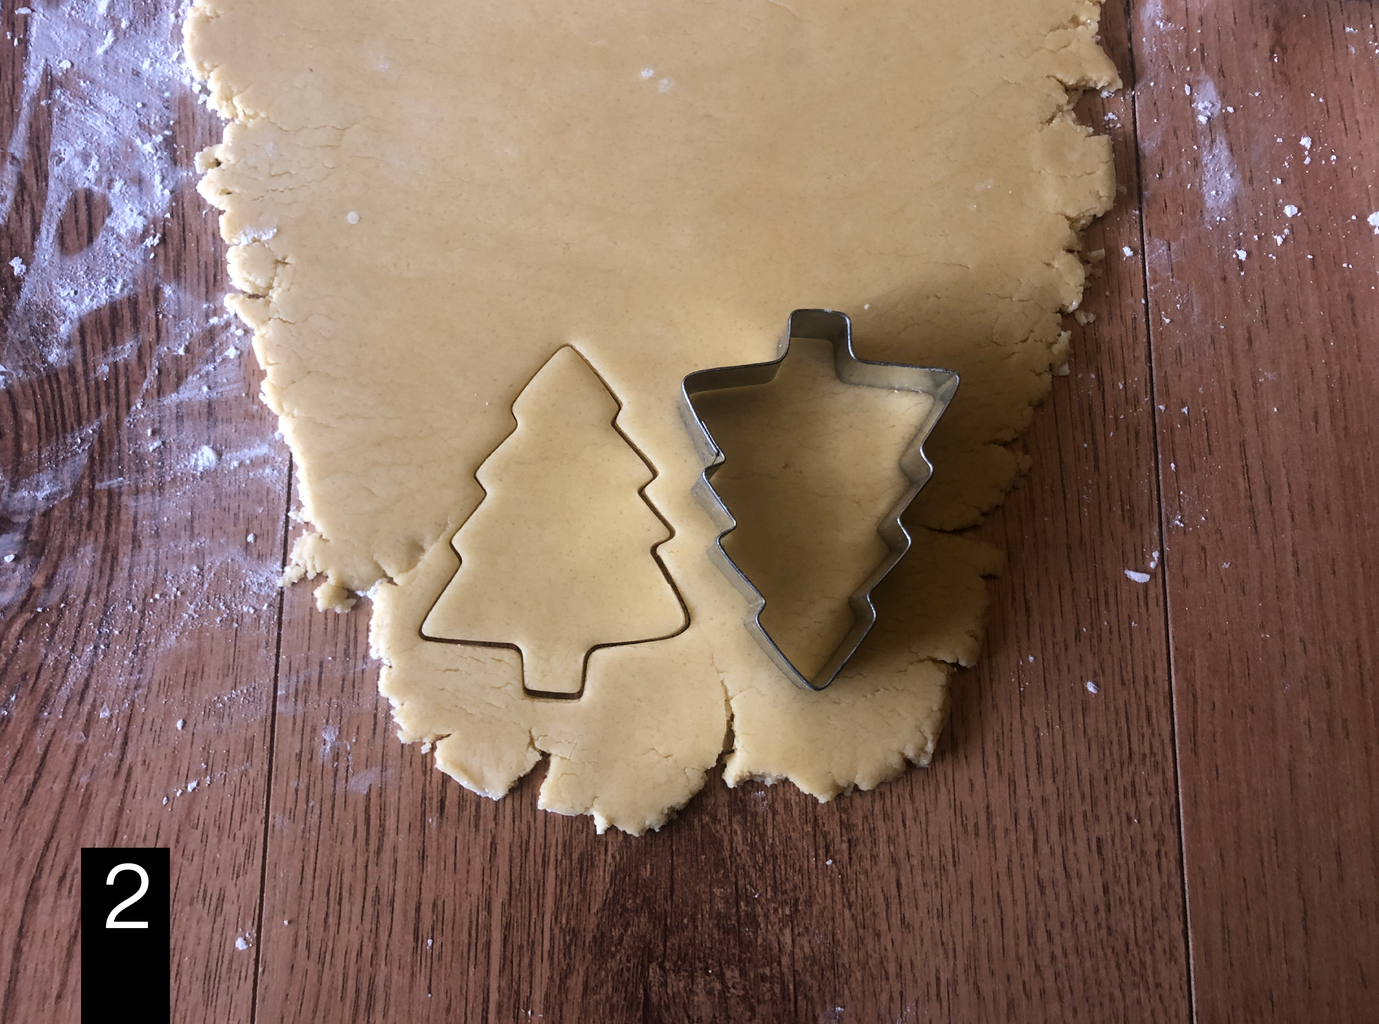 Shaping the Cookies: